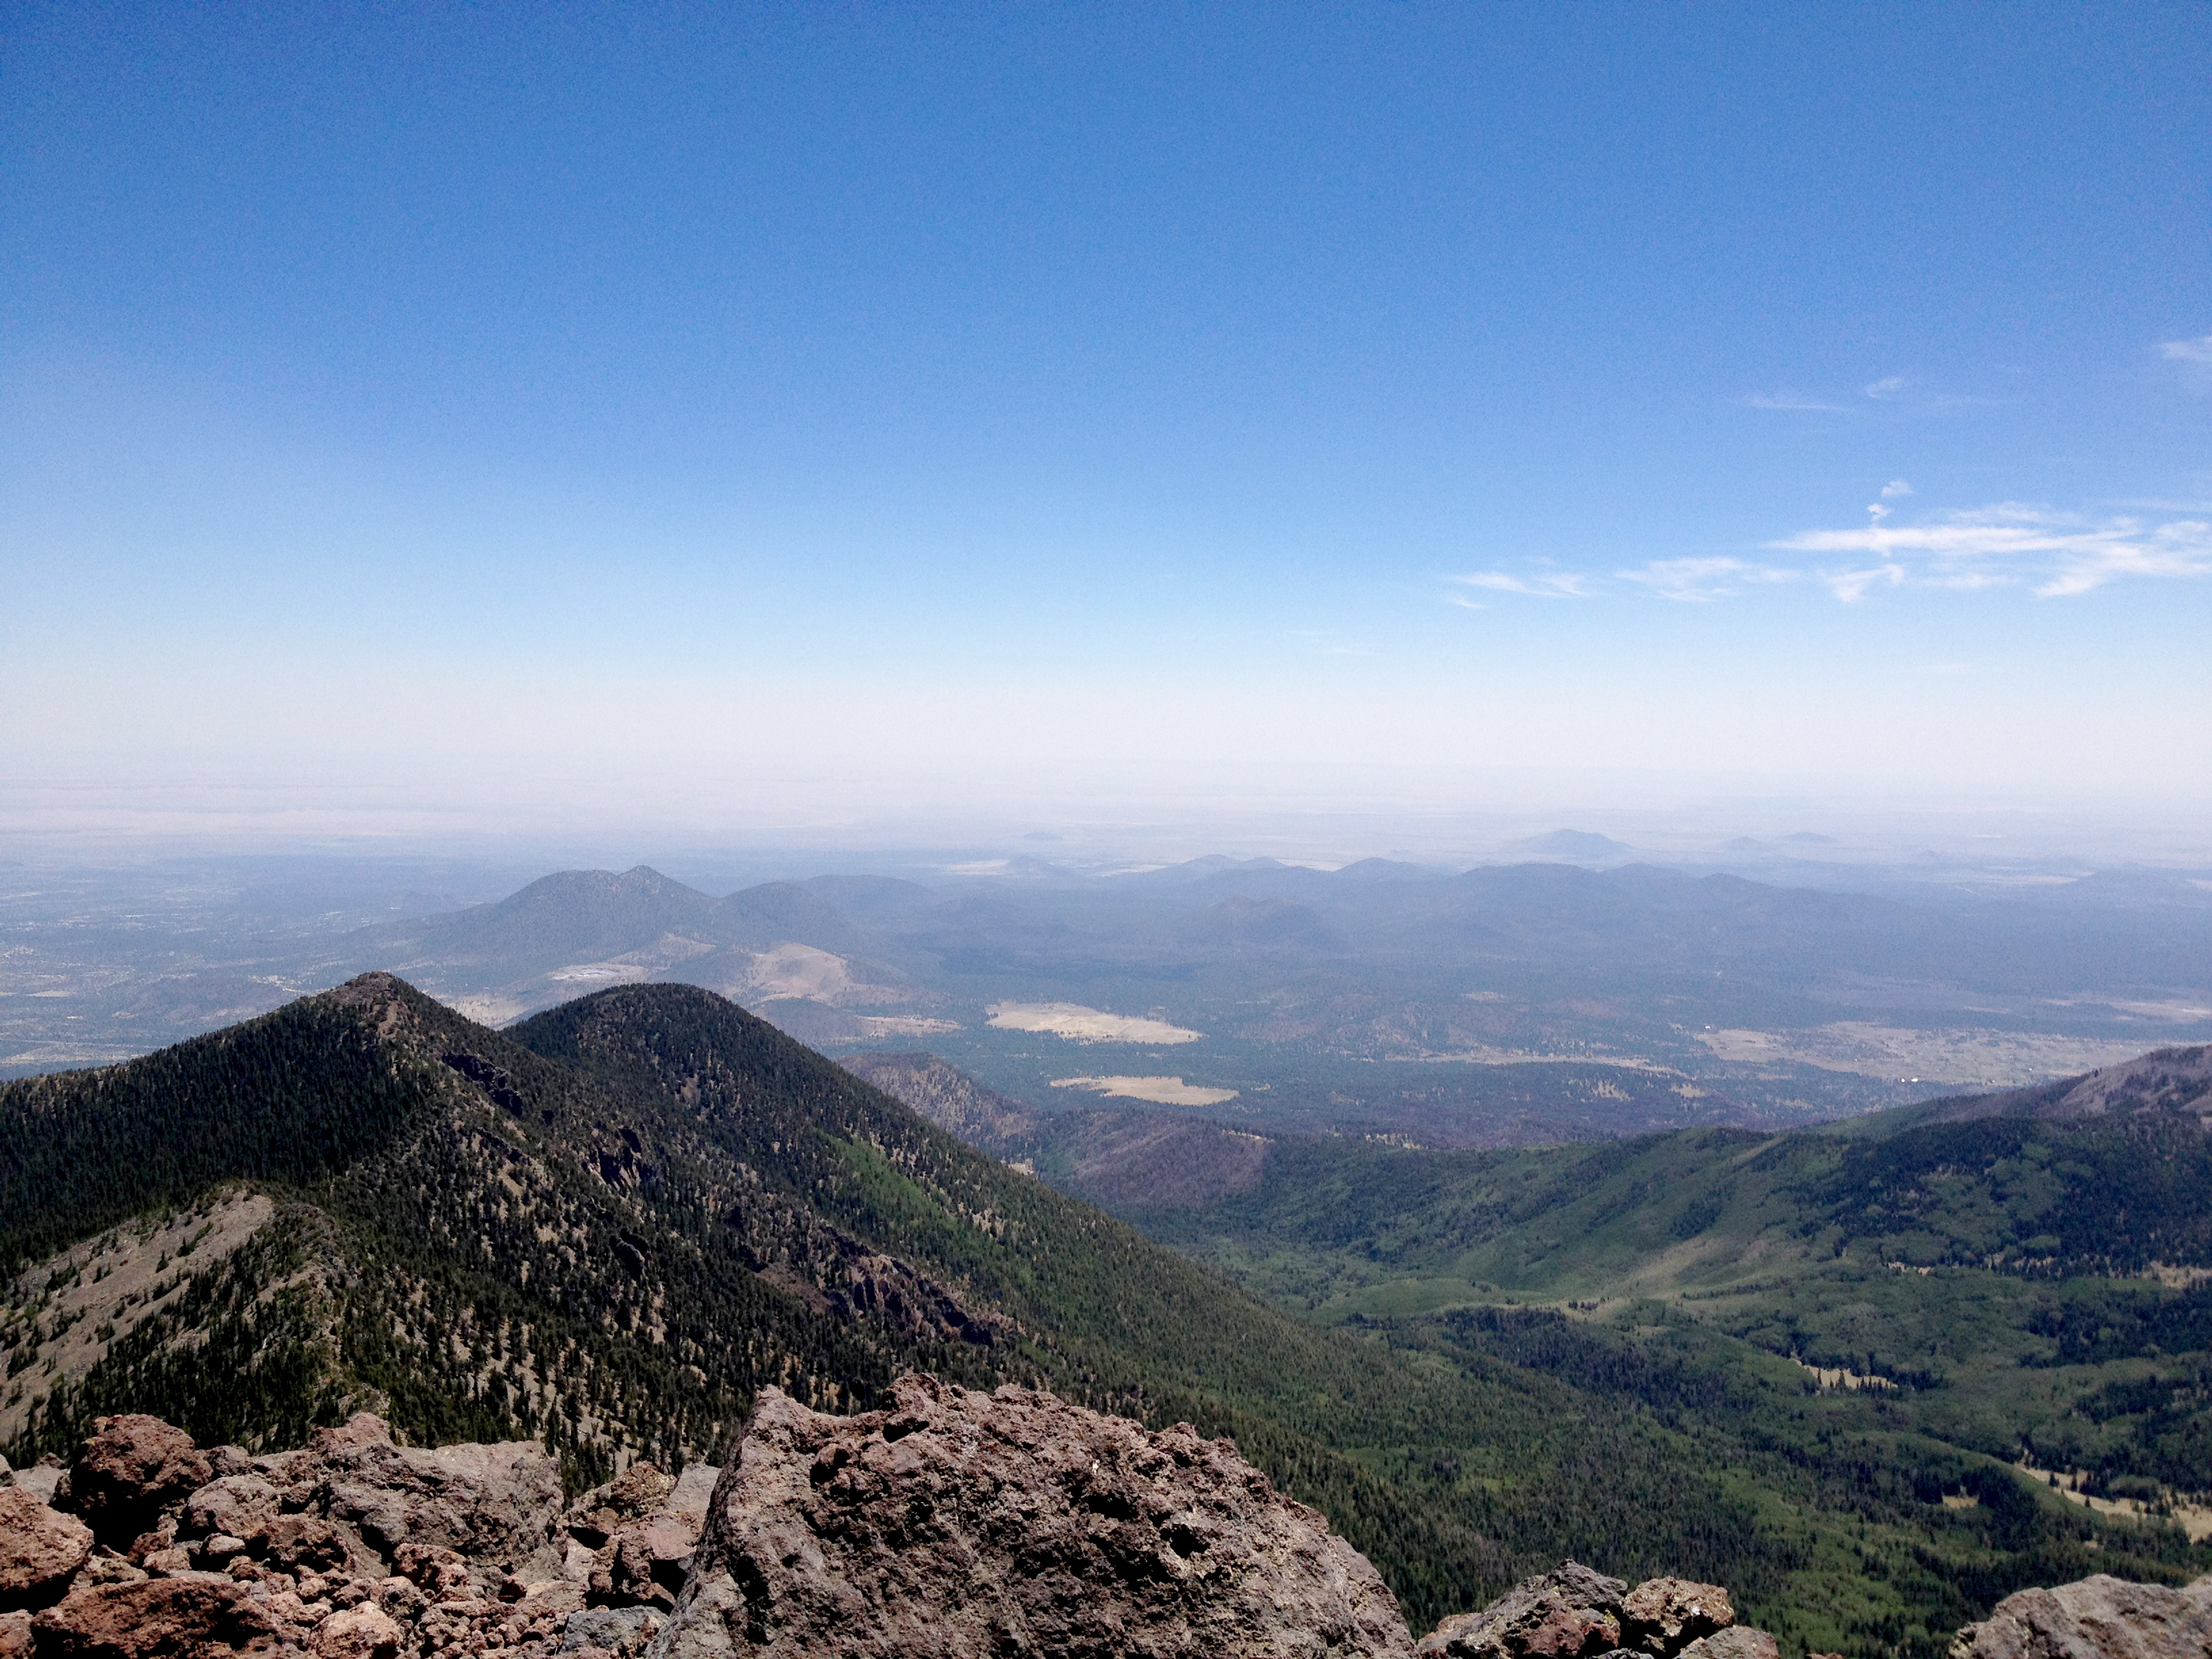 View from the summit of Humphreys Peak, the highest natural point in Arizona with an elevation of 12,637 feet and located in the Coconino National Forest, about 11 miles north of Flagstaff, Arizona   Stock image, St. George News